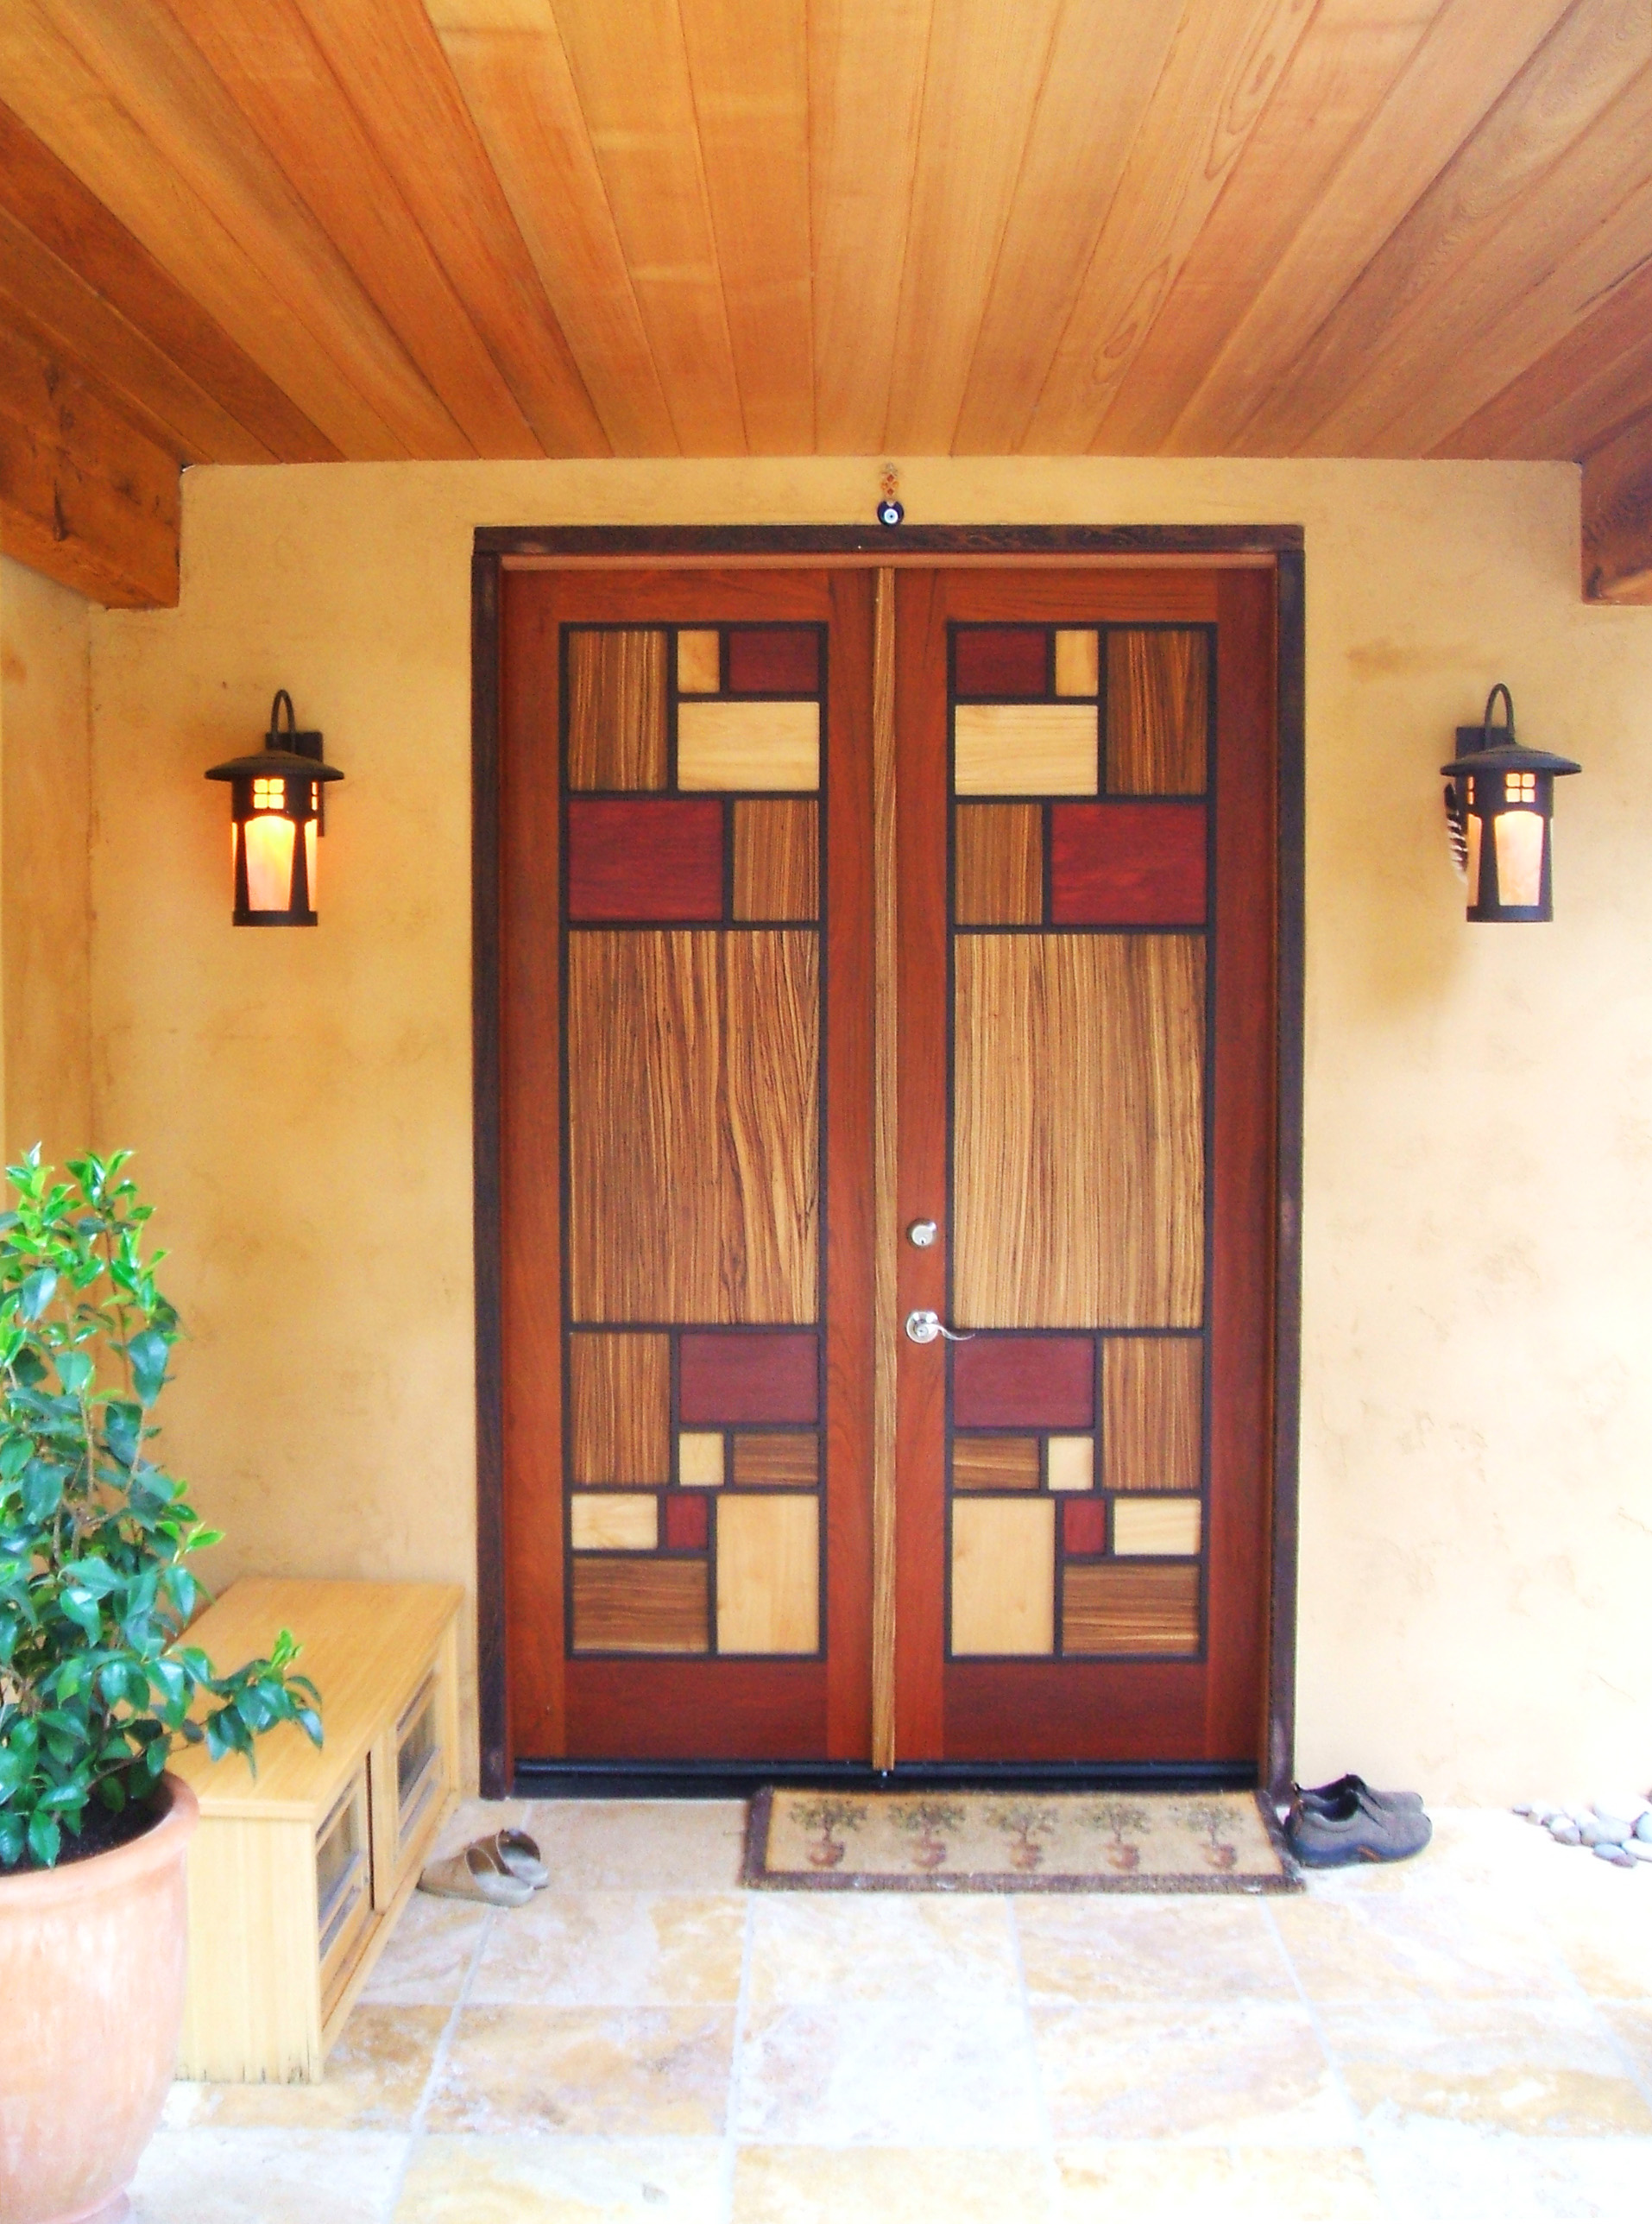 Front entry doors in 5 exotic woods: Jatoba, Wenge, Zebra, Purple Heart, and Curly Maple